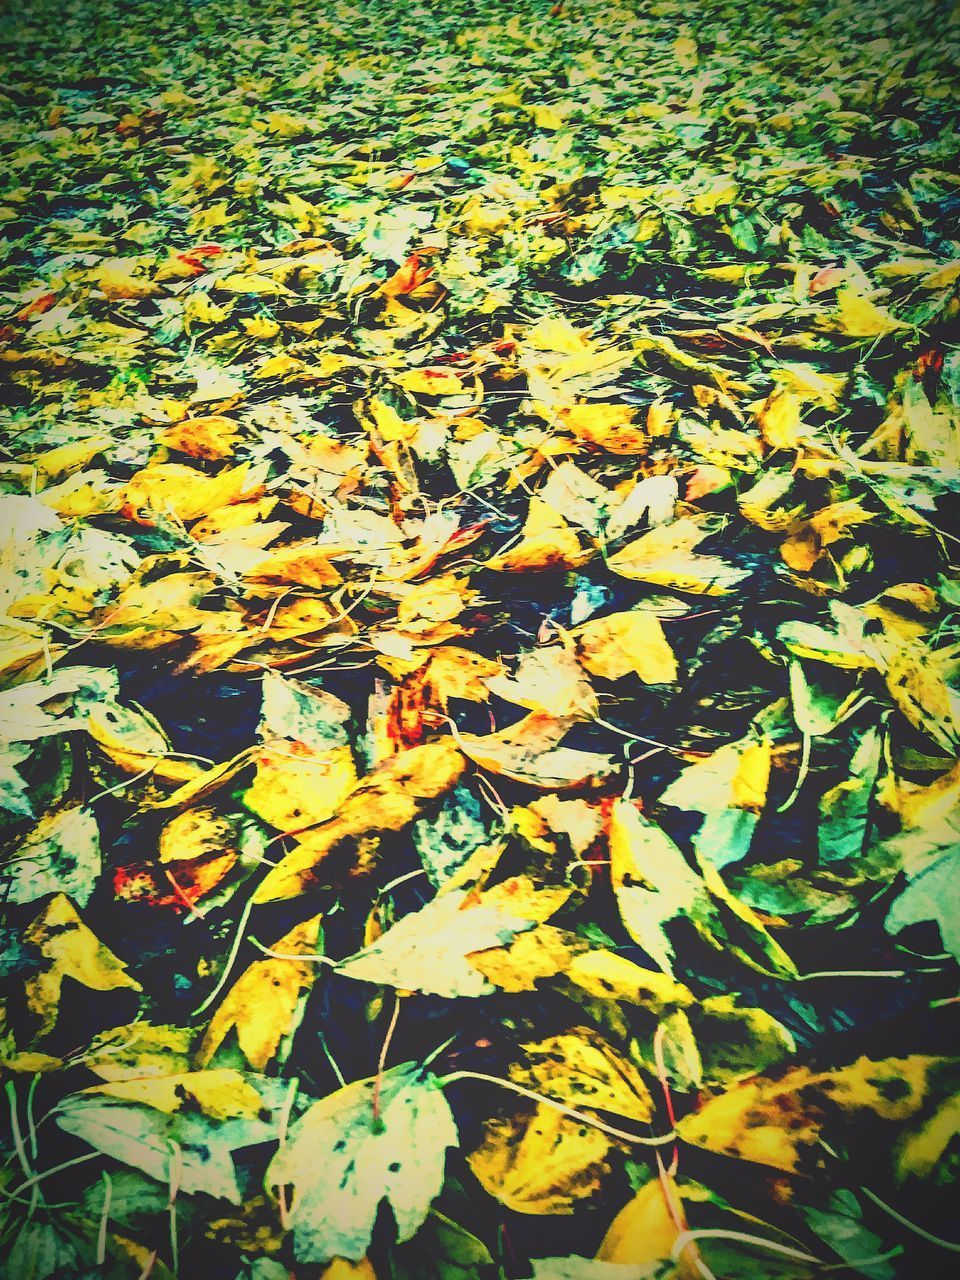 HIGH ANGLE VIEW OF YELLOW MAPLE LEAVES ON LAND